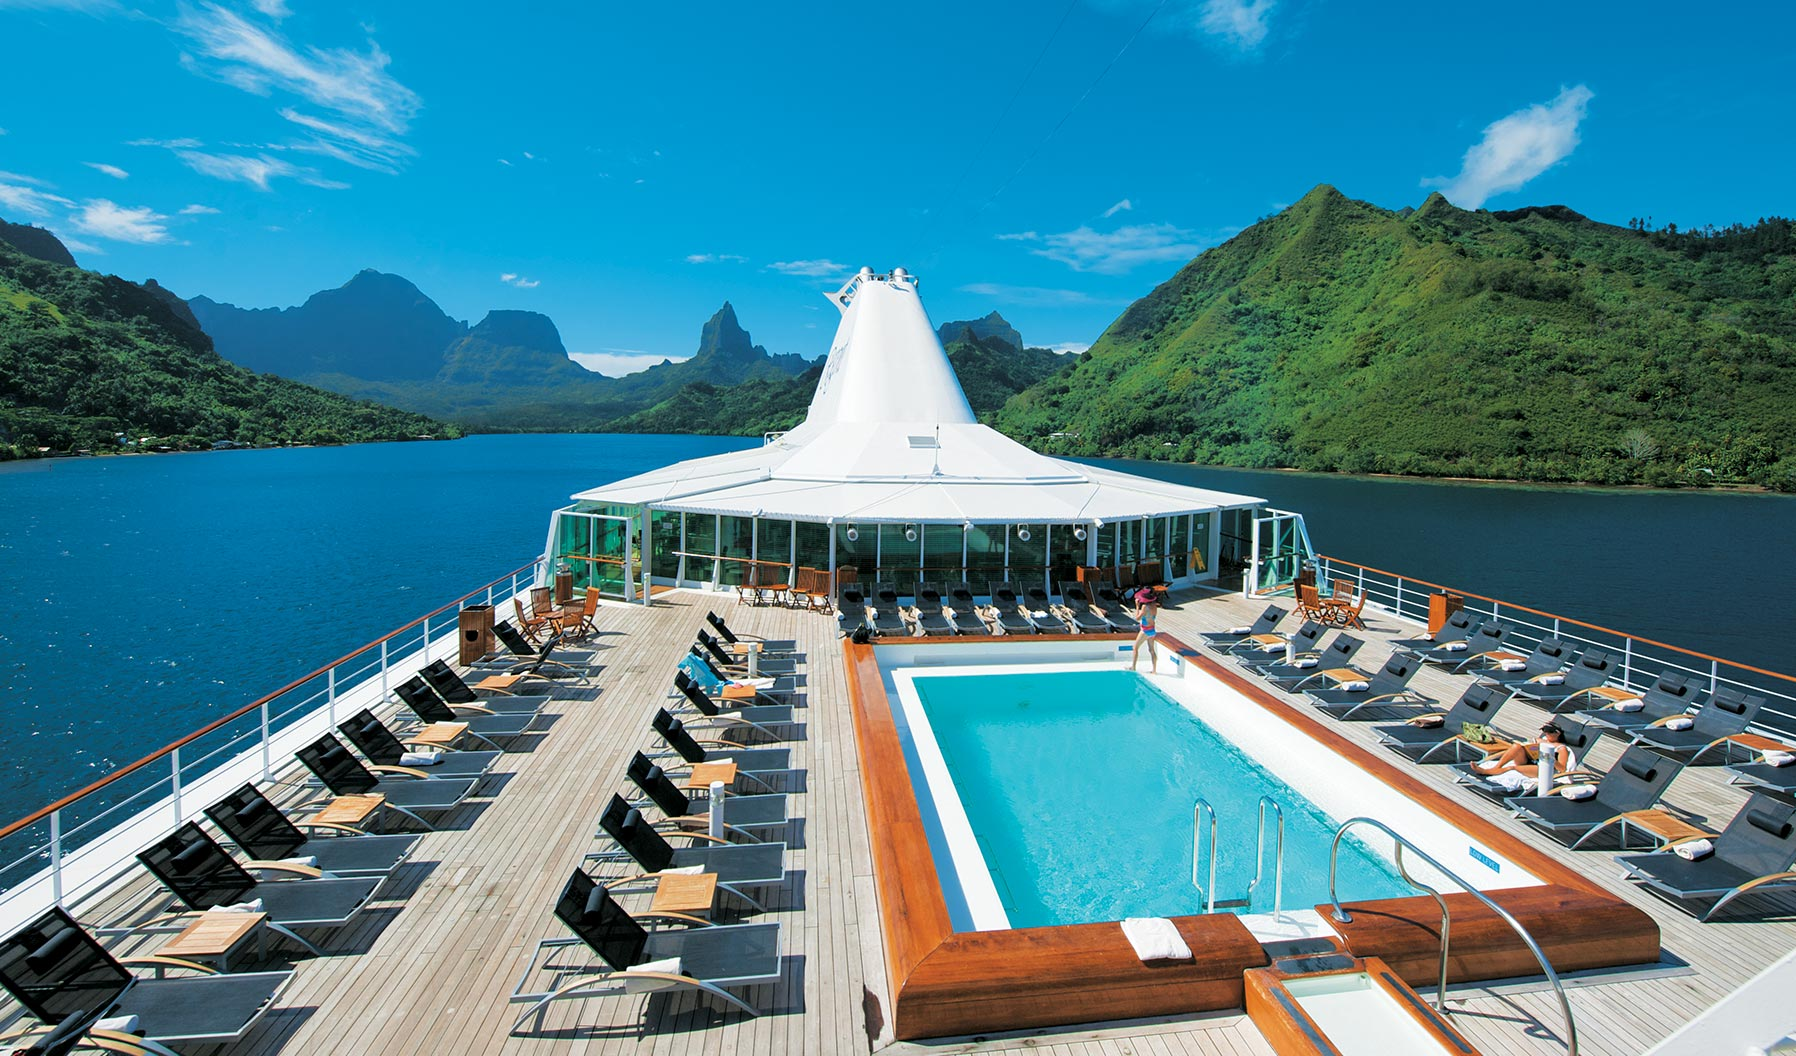 The pool on the top of a Paul Gauguin cruise liner cruising near lush green islands